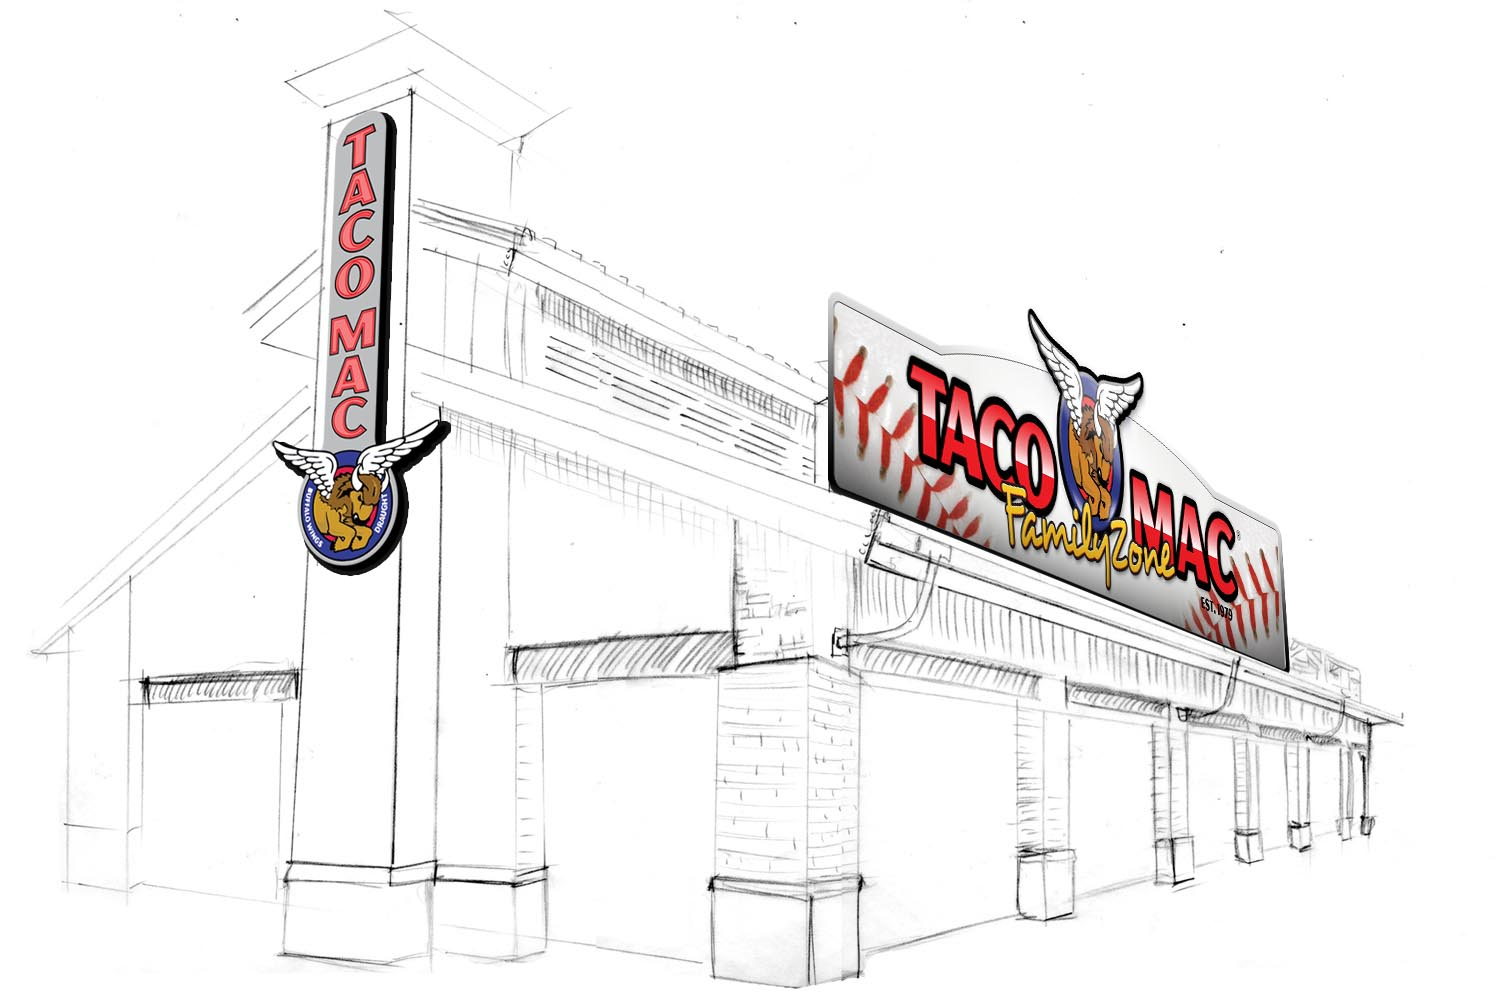 Initial sketch of the Taco Mac Family Zone from MELT, Taco Mac's creative agency and developers of the Taco Mac Family Zone